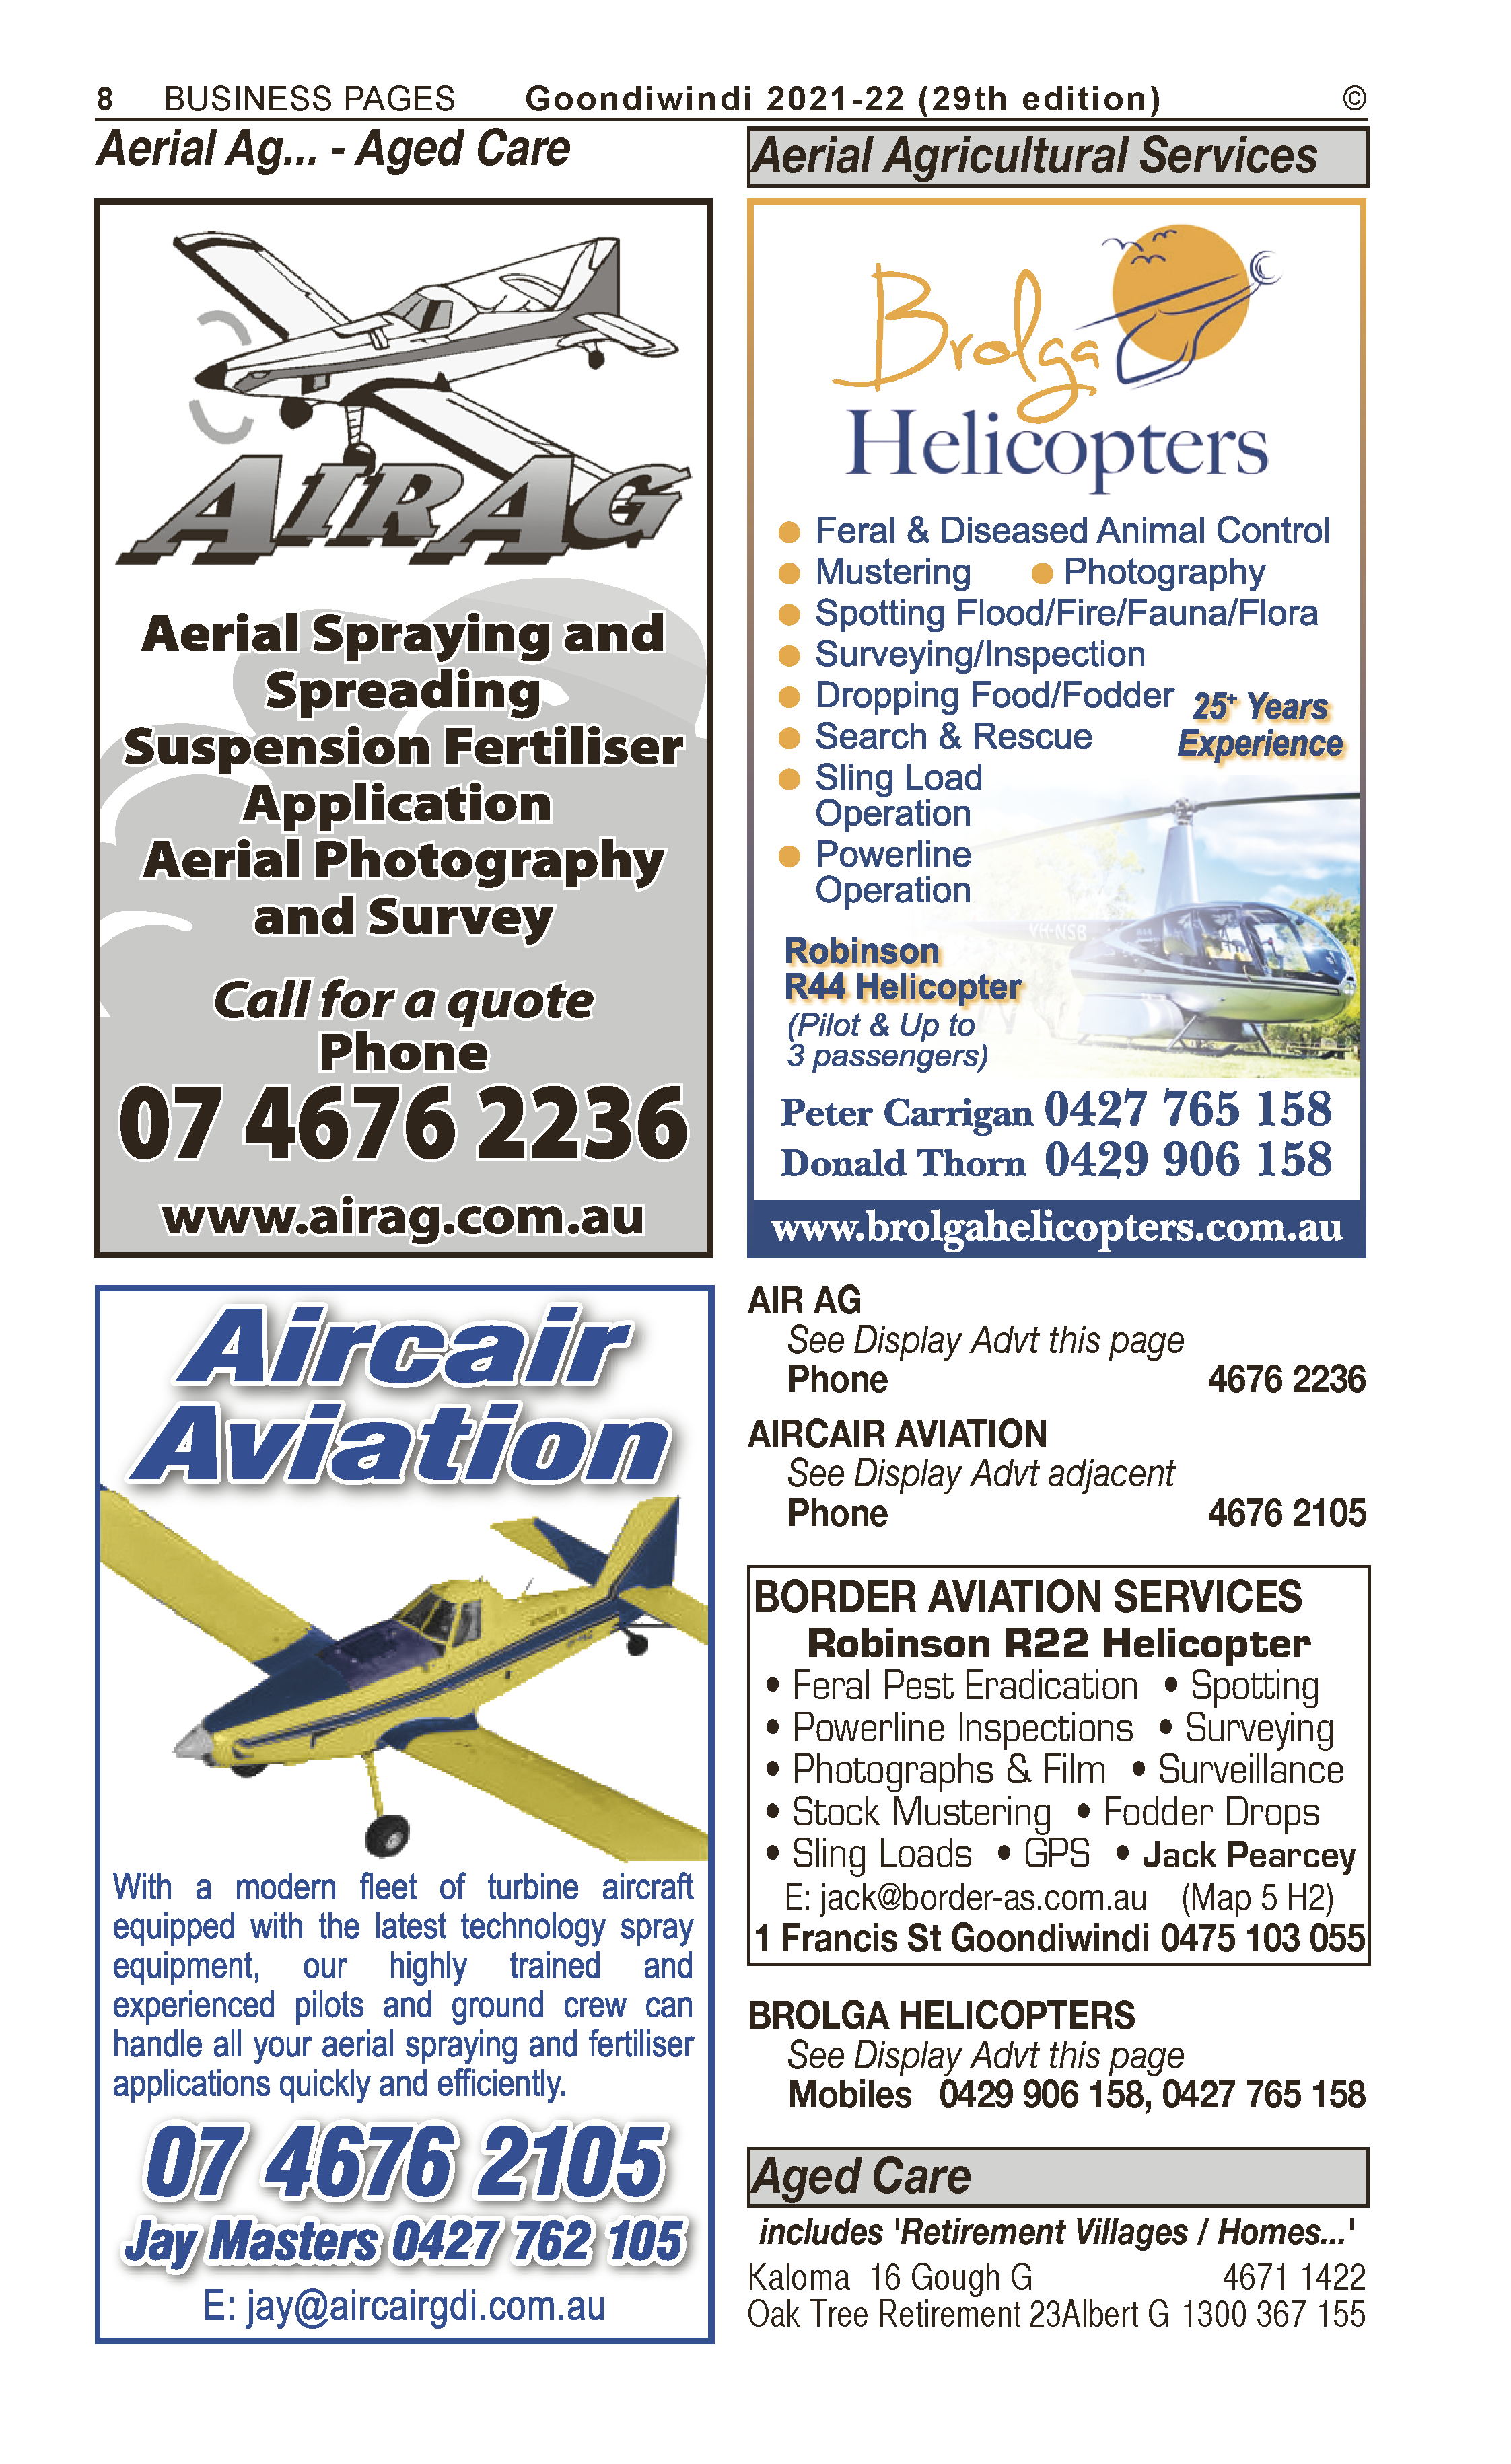 Aircair Aviation | Aerial Agricultural Services  in Goondiwindi | PBezy Pocket Books local directories - page 8